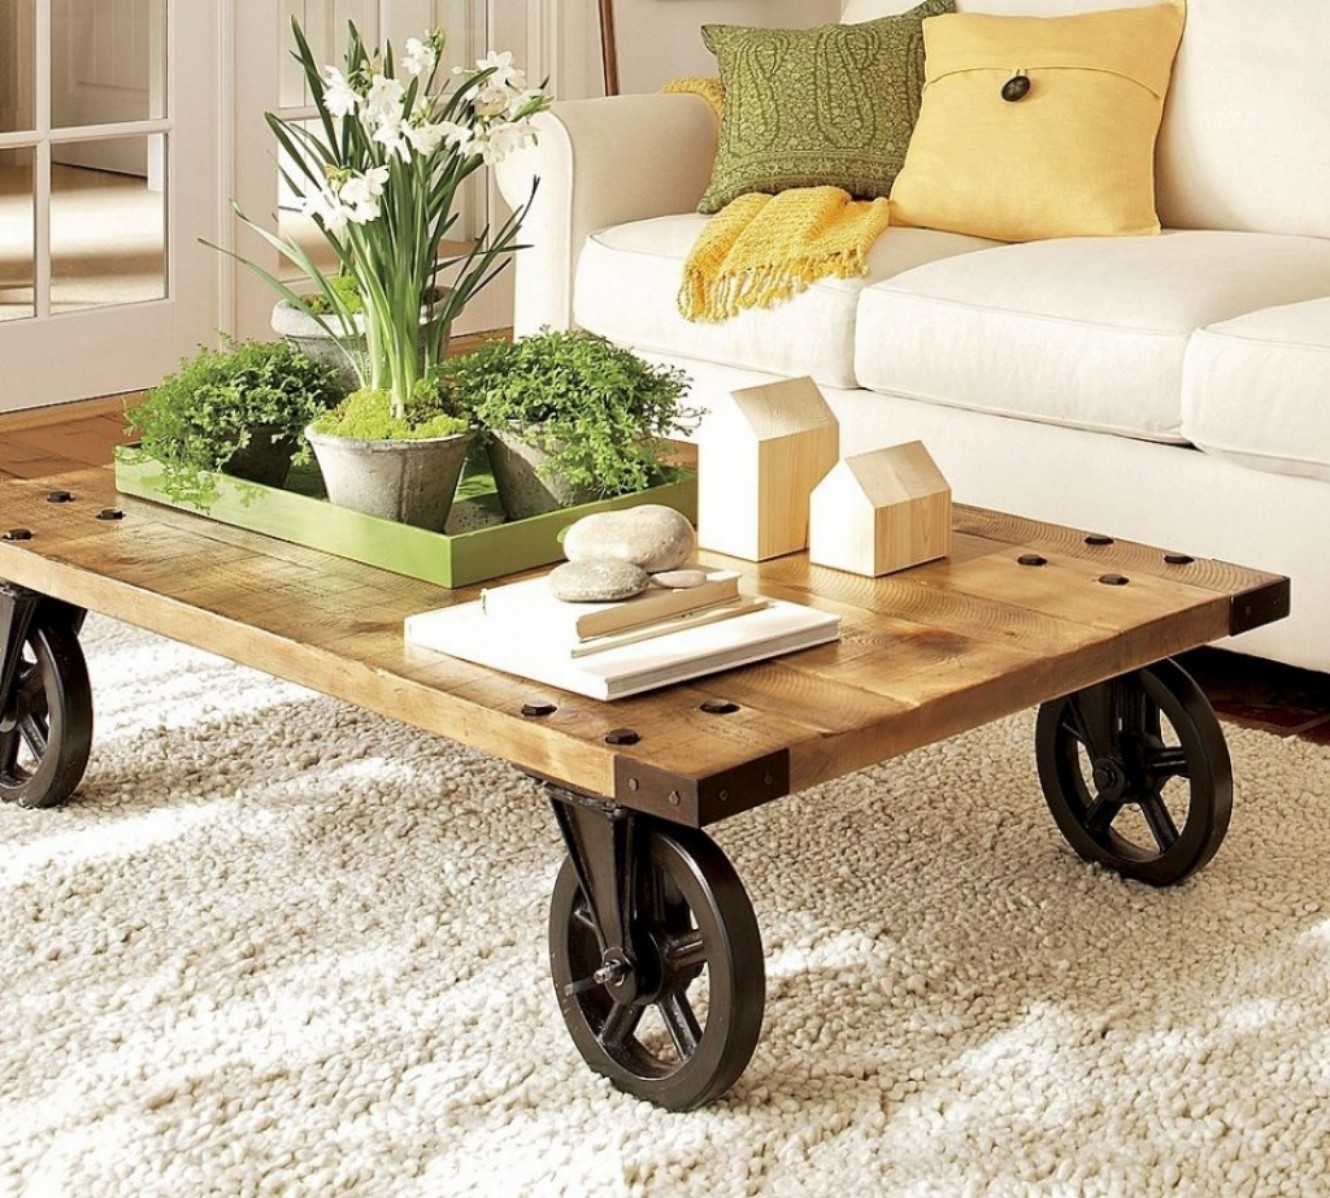 12 Modern Coffee And Side Tables With Wheels